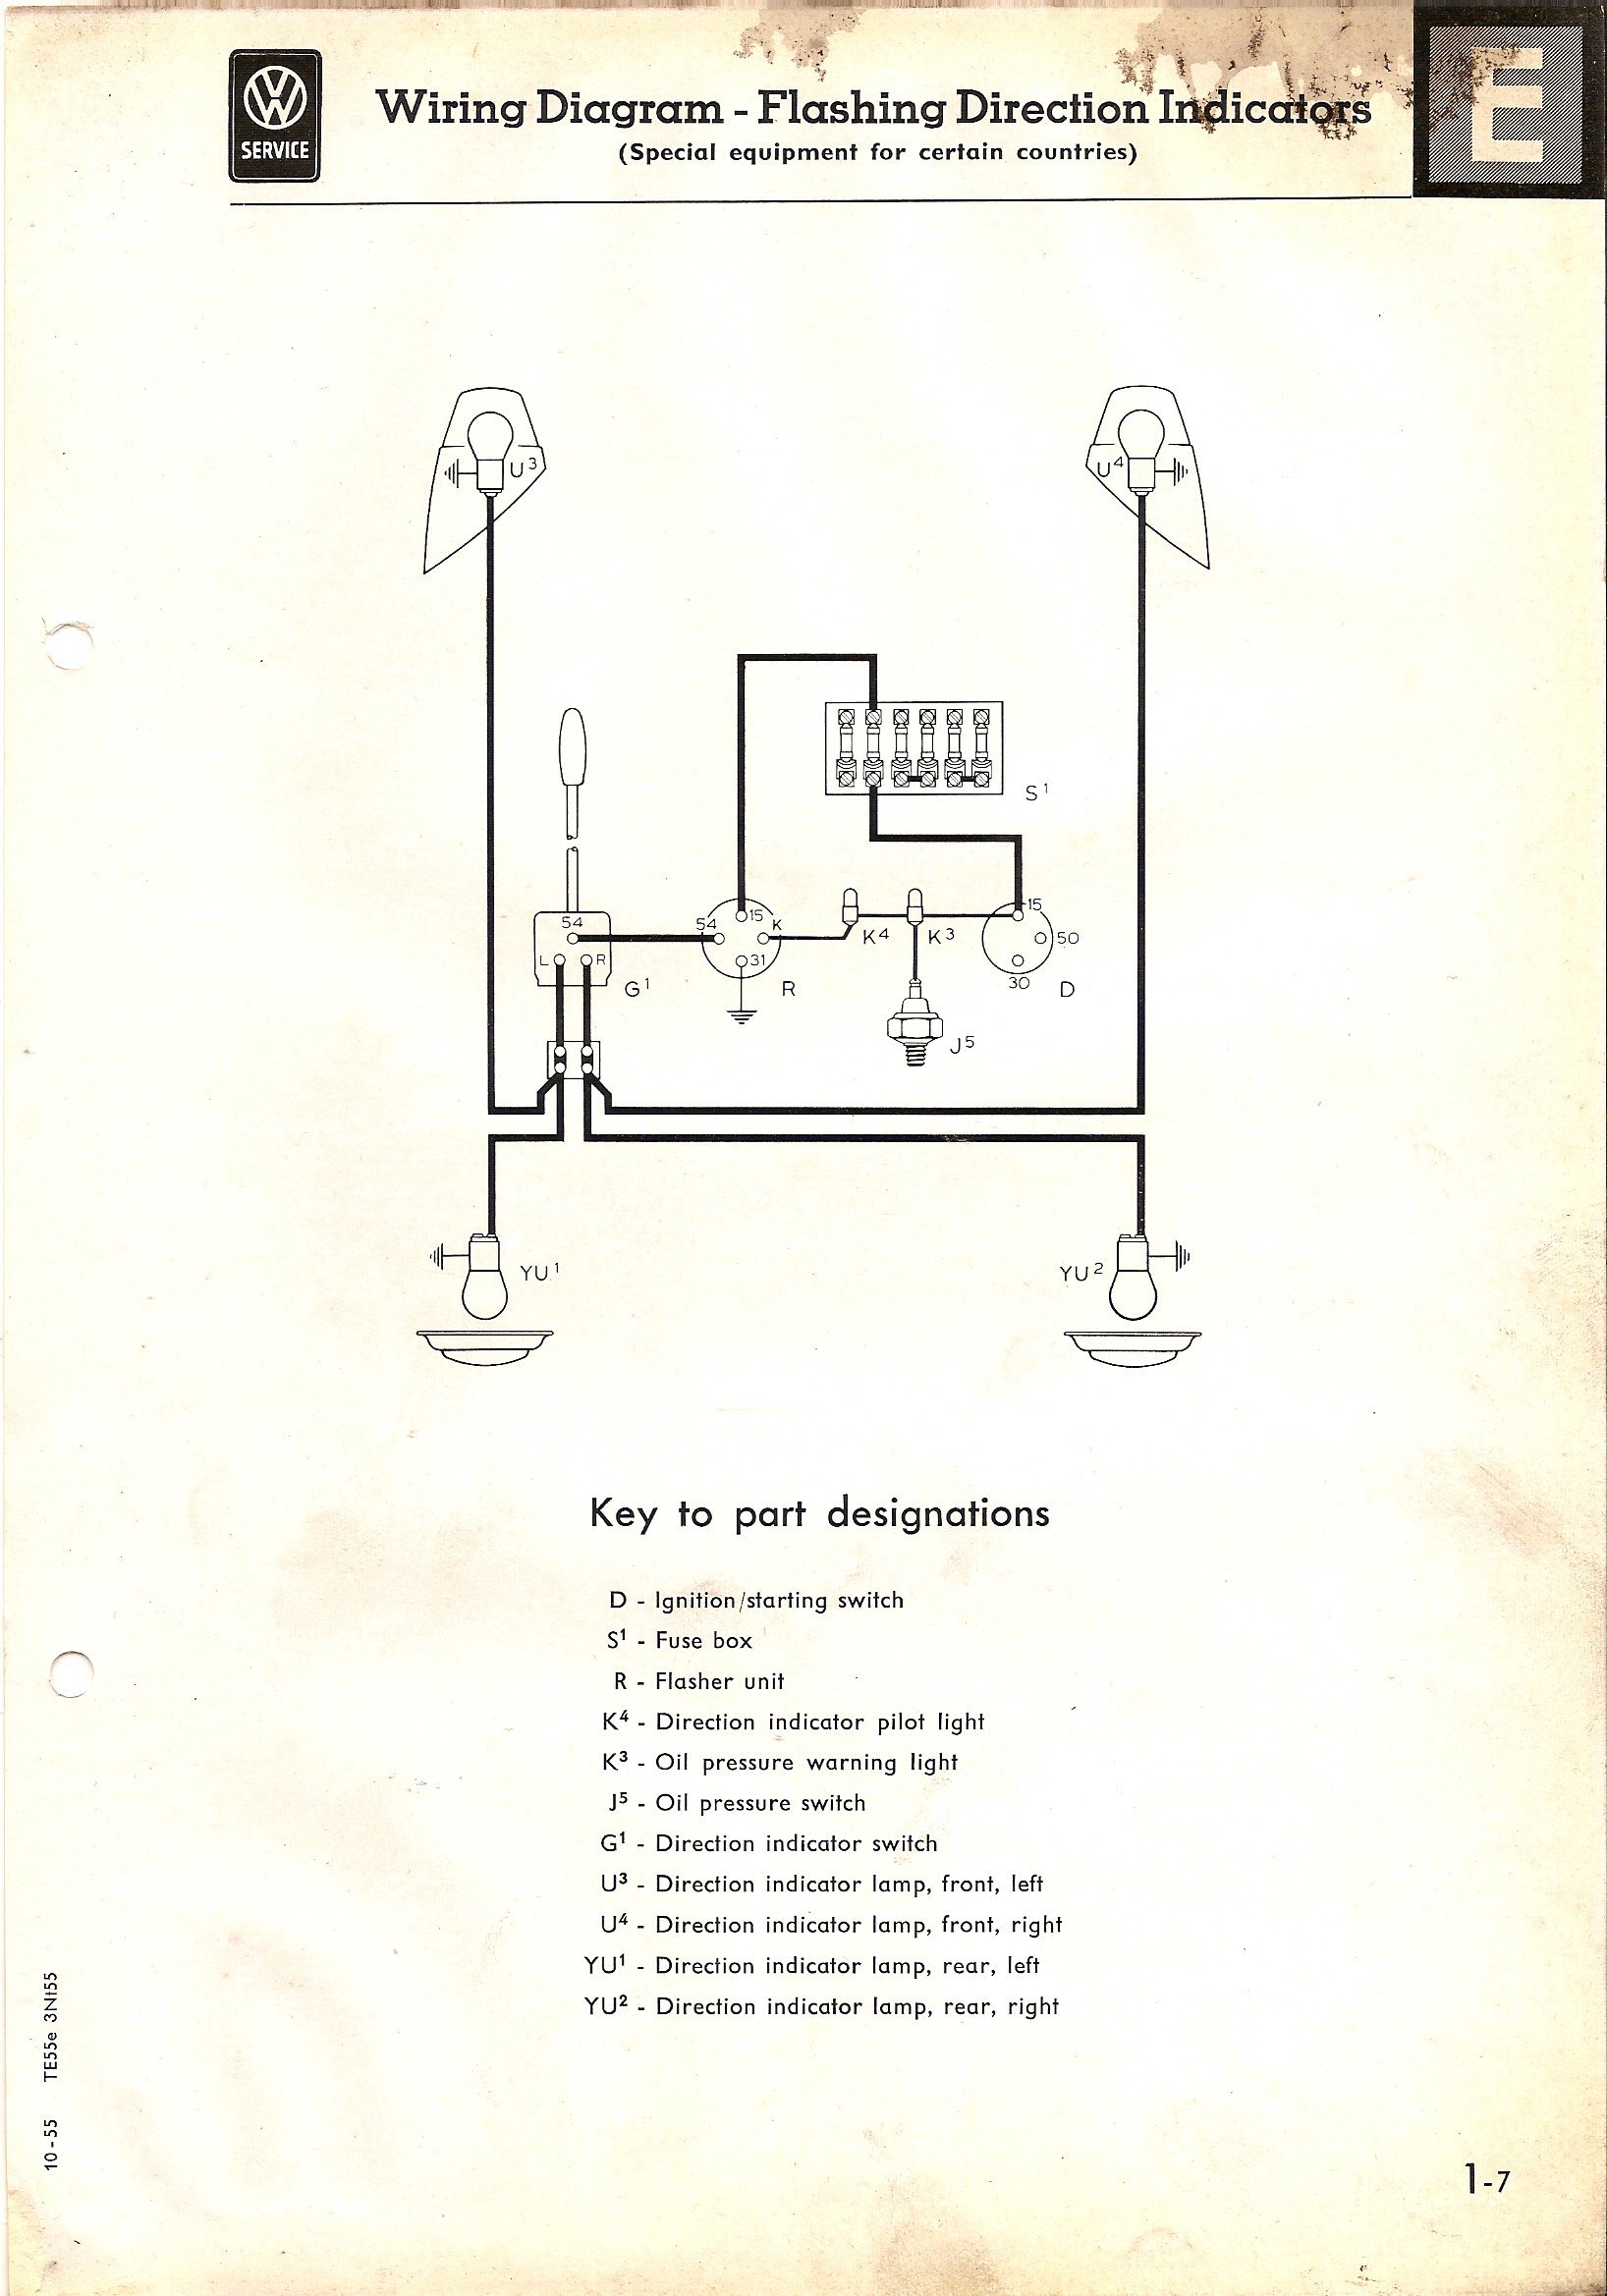 1969 Buick Turn Signal Wiring Diagram Sample Kenworth T800 Engine Thesamba Com Type 2 Diagrams Steering Wheel Assembly